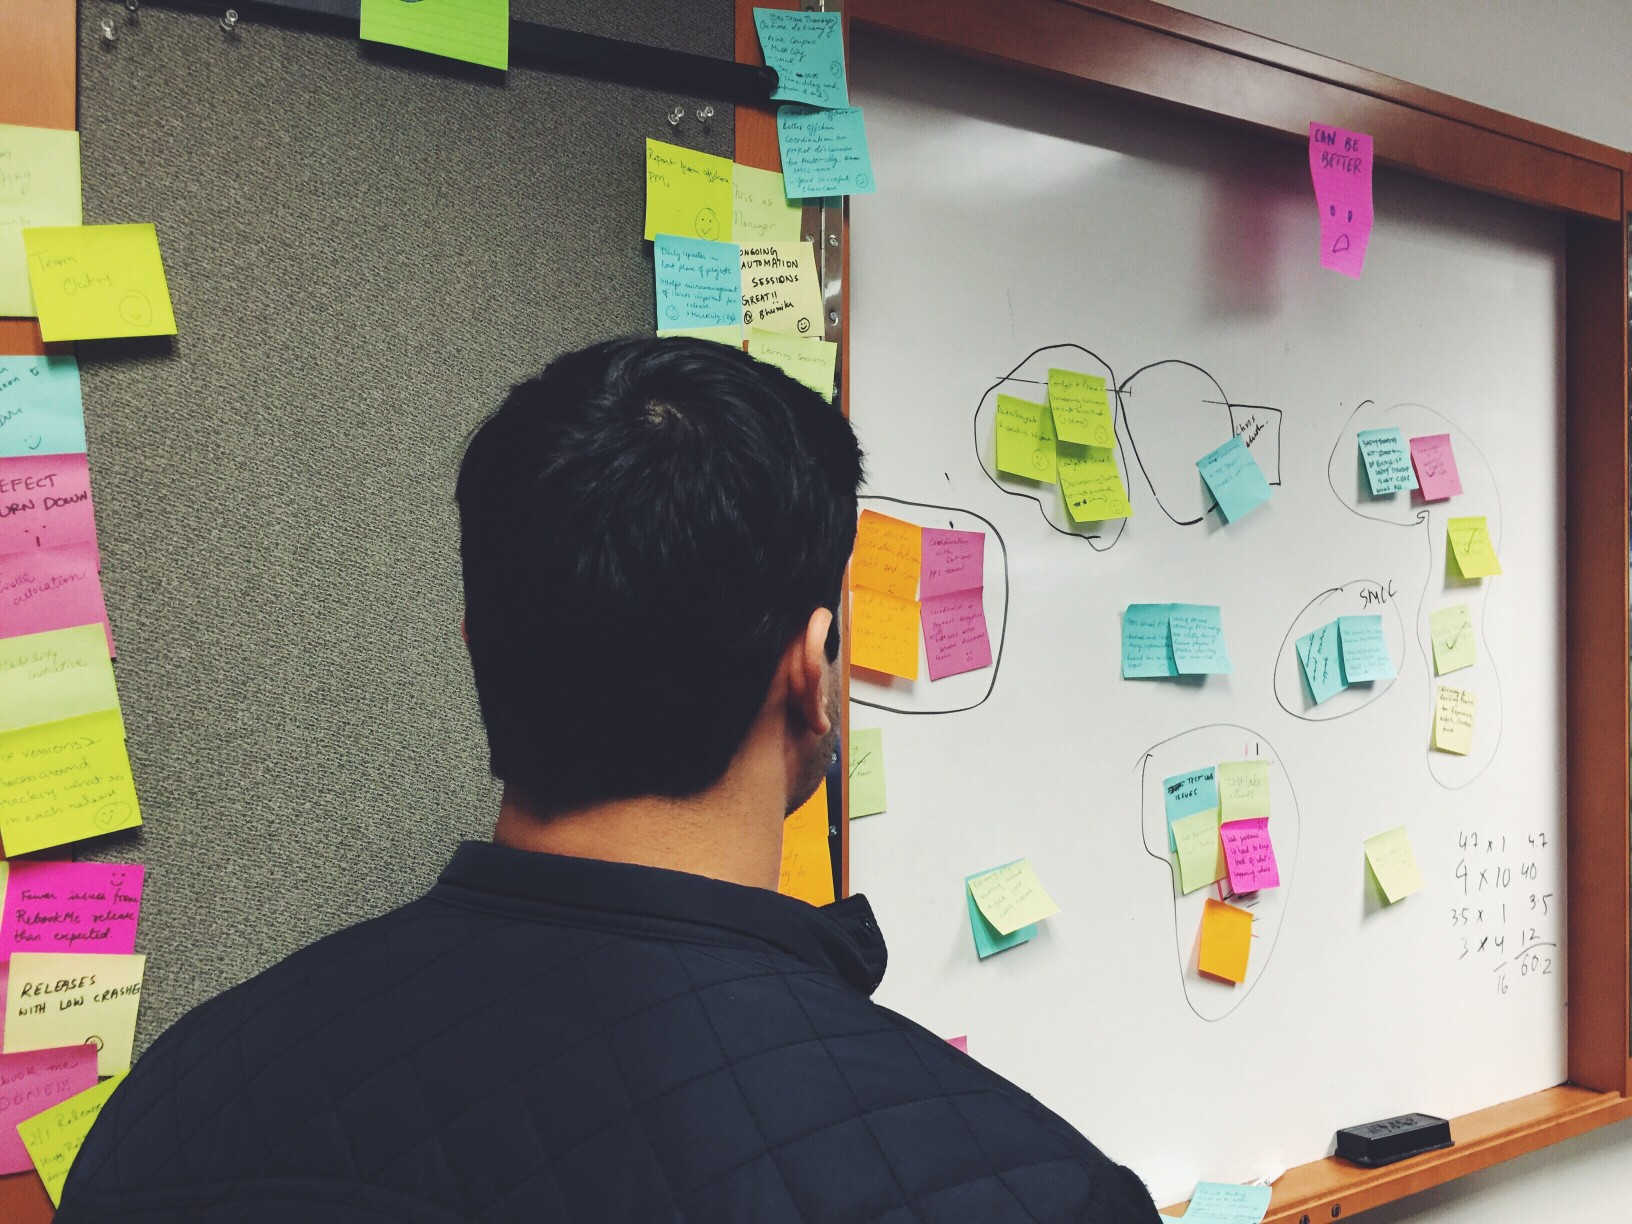 reading-the-action-items-on-the-sticky-posted-on-wall-after-development-meeting_t20_3JpGQB